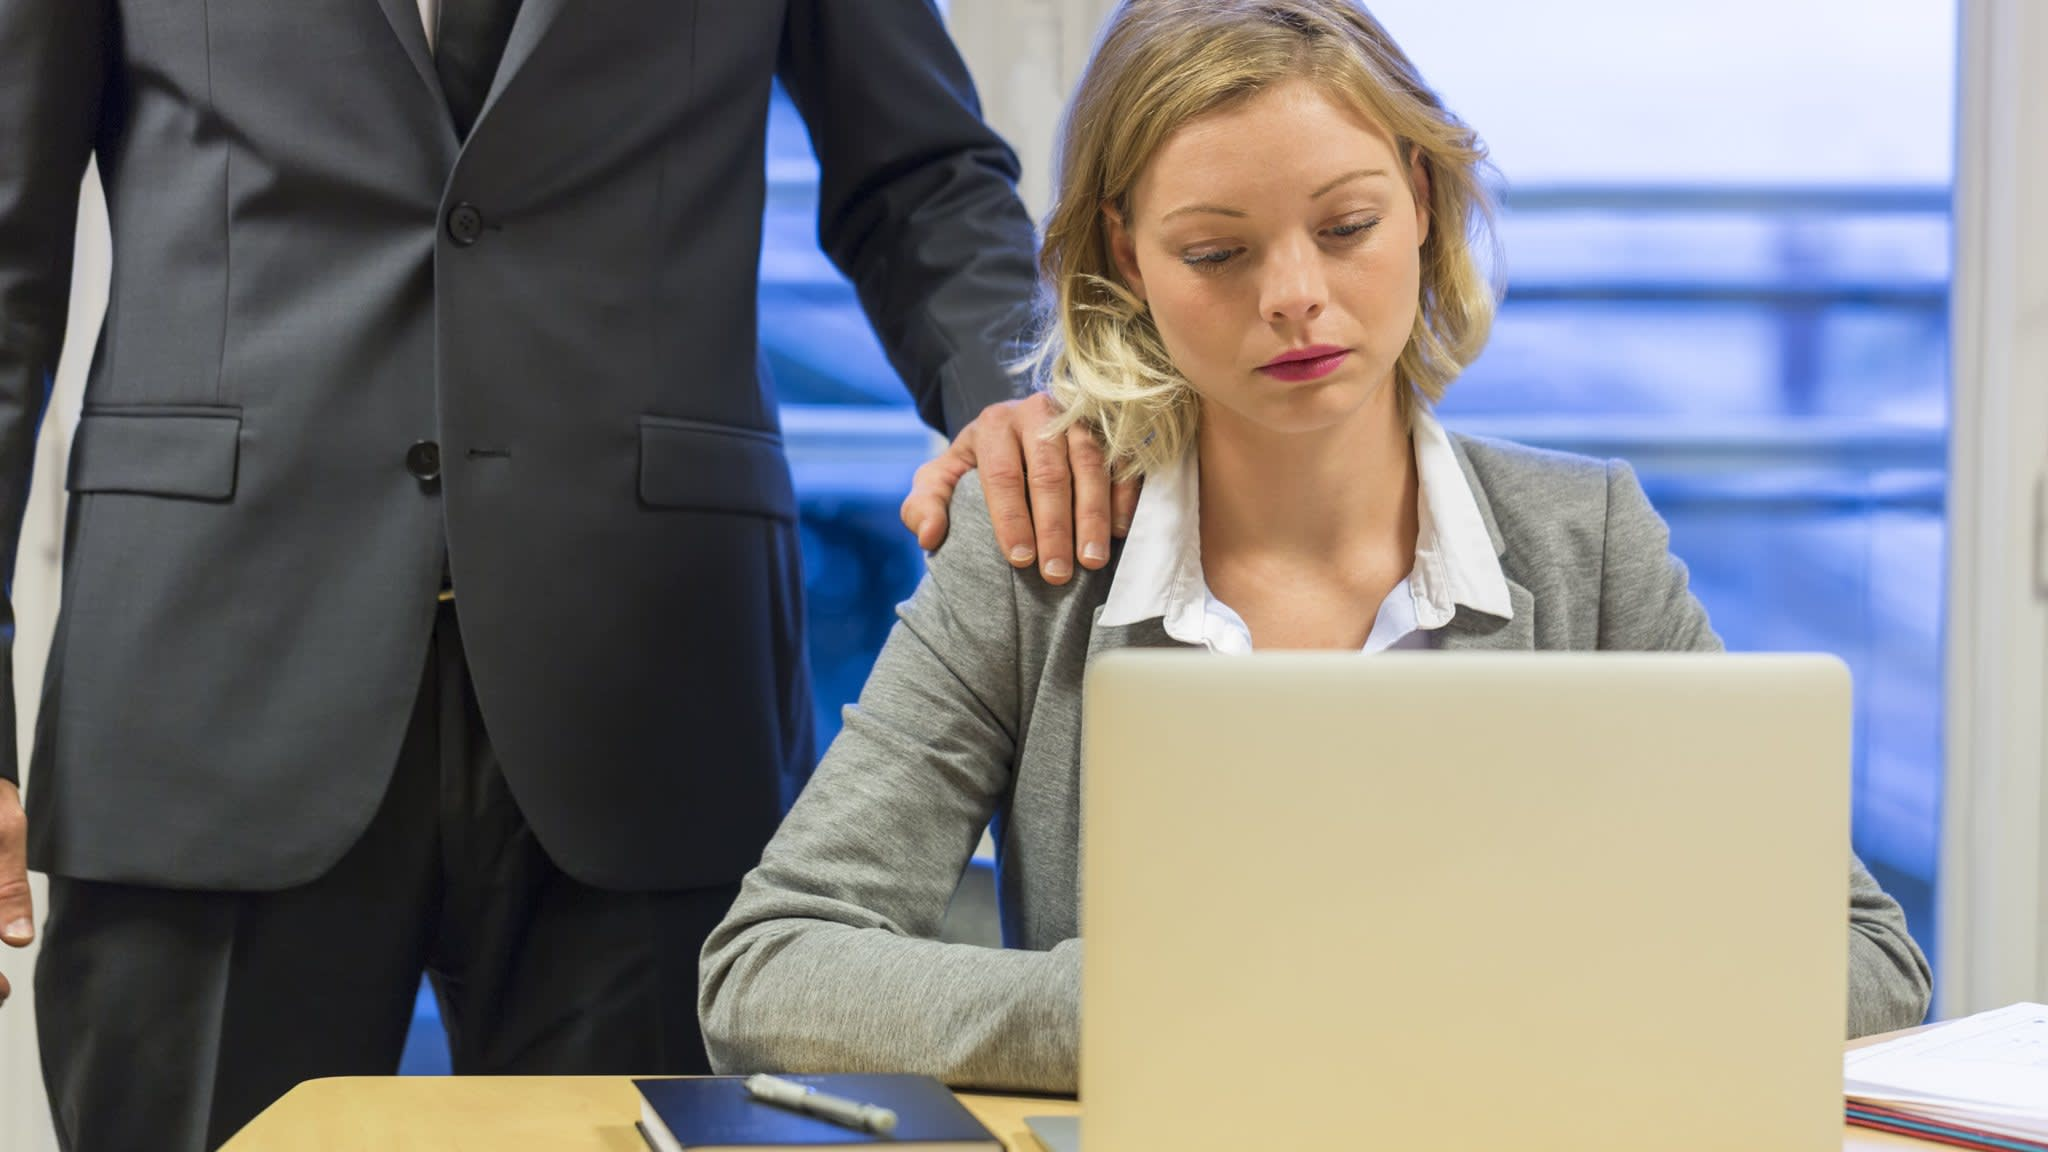 Australia reports rise in workplace sexual harassment